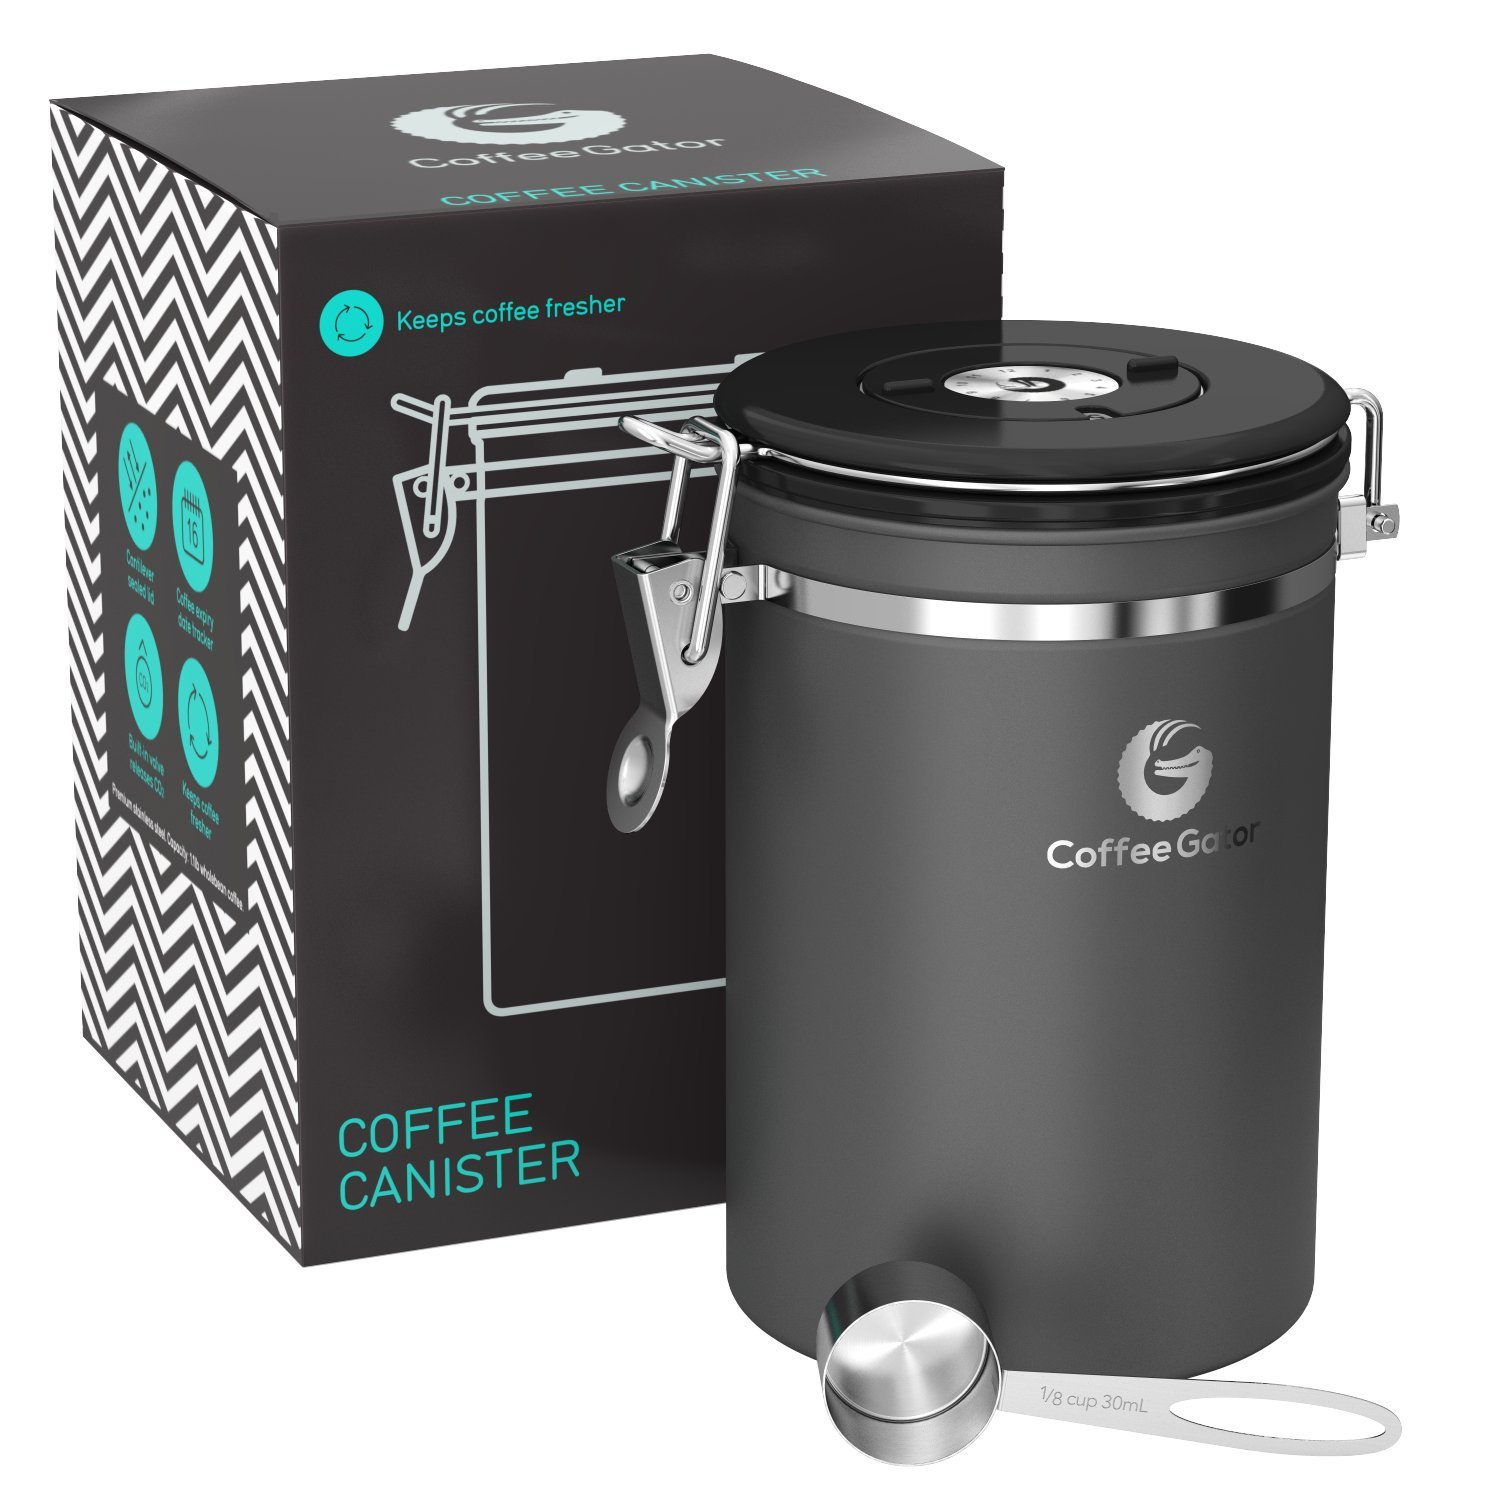 Coffee Gator Stainless Steel Container - Canister with co2 Valve and Scoop - Large, Grey